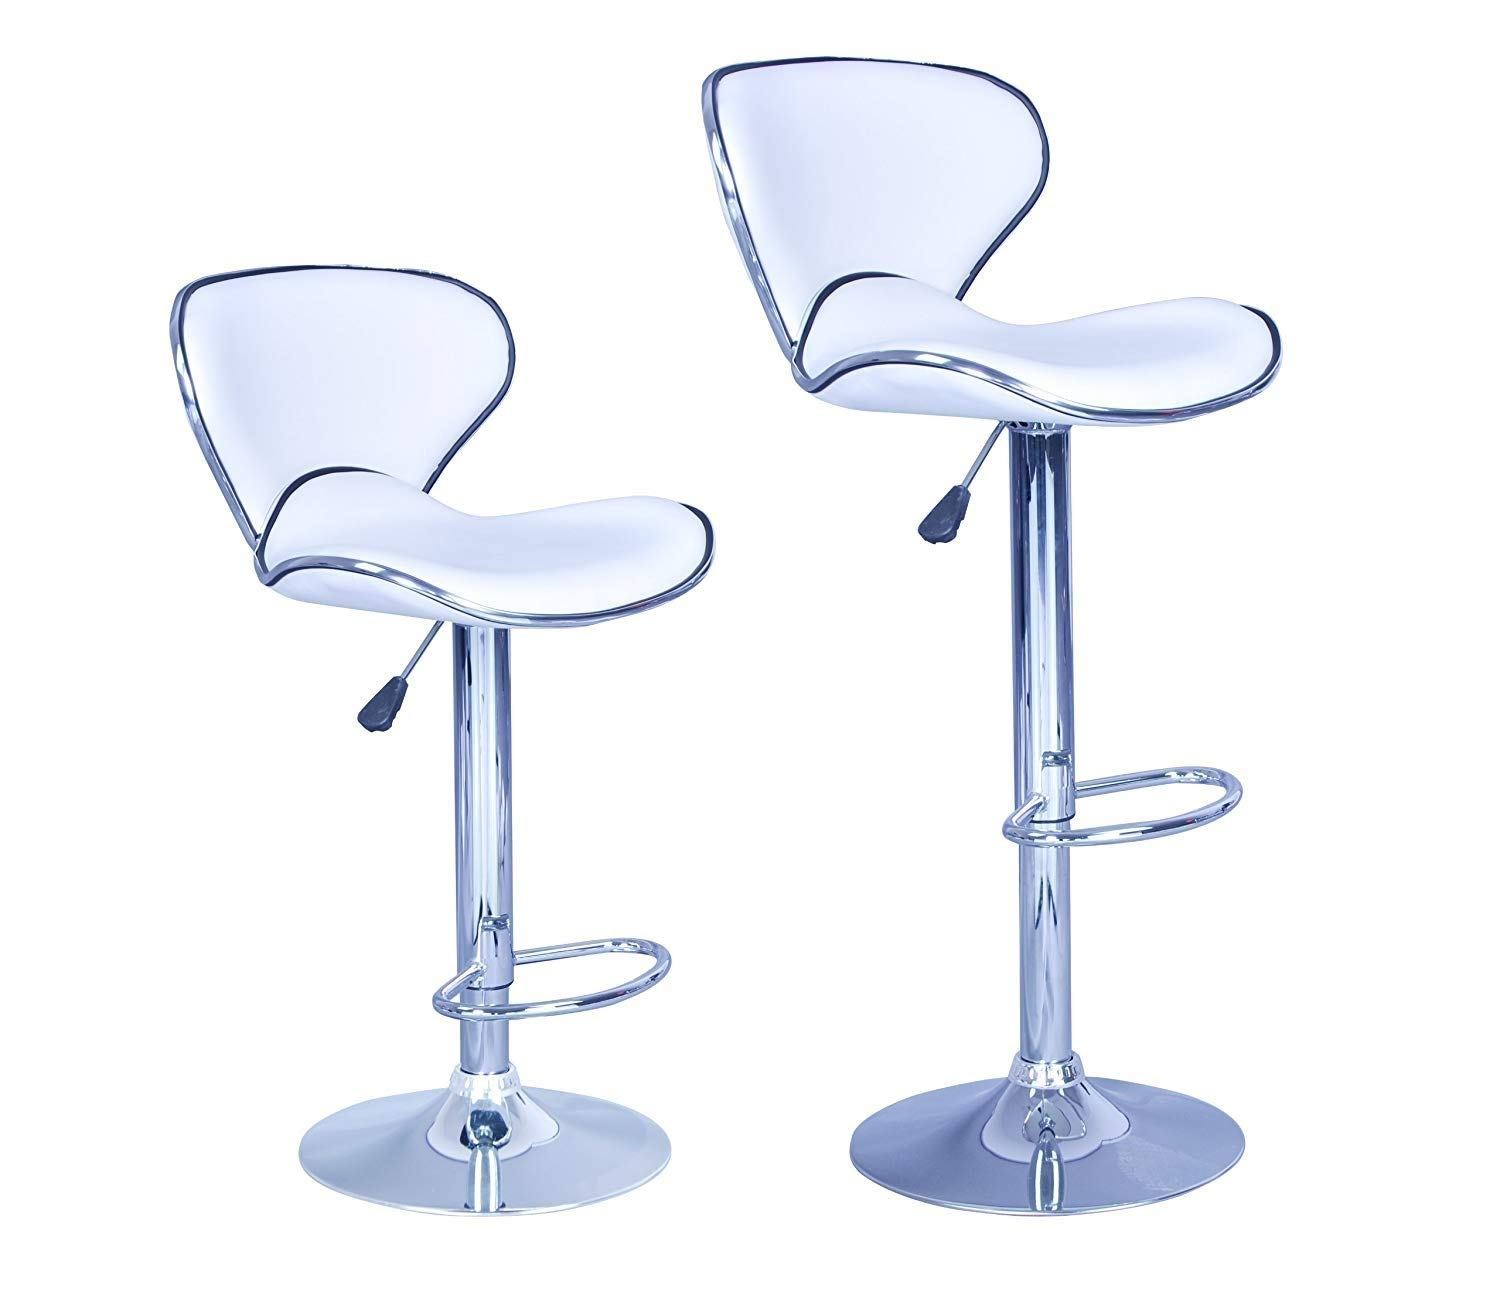 White Modern Adjustable Synthetic Leather Swivel Bar Stools Chairs B03 Sets  Of 2